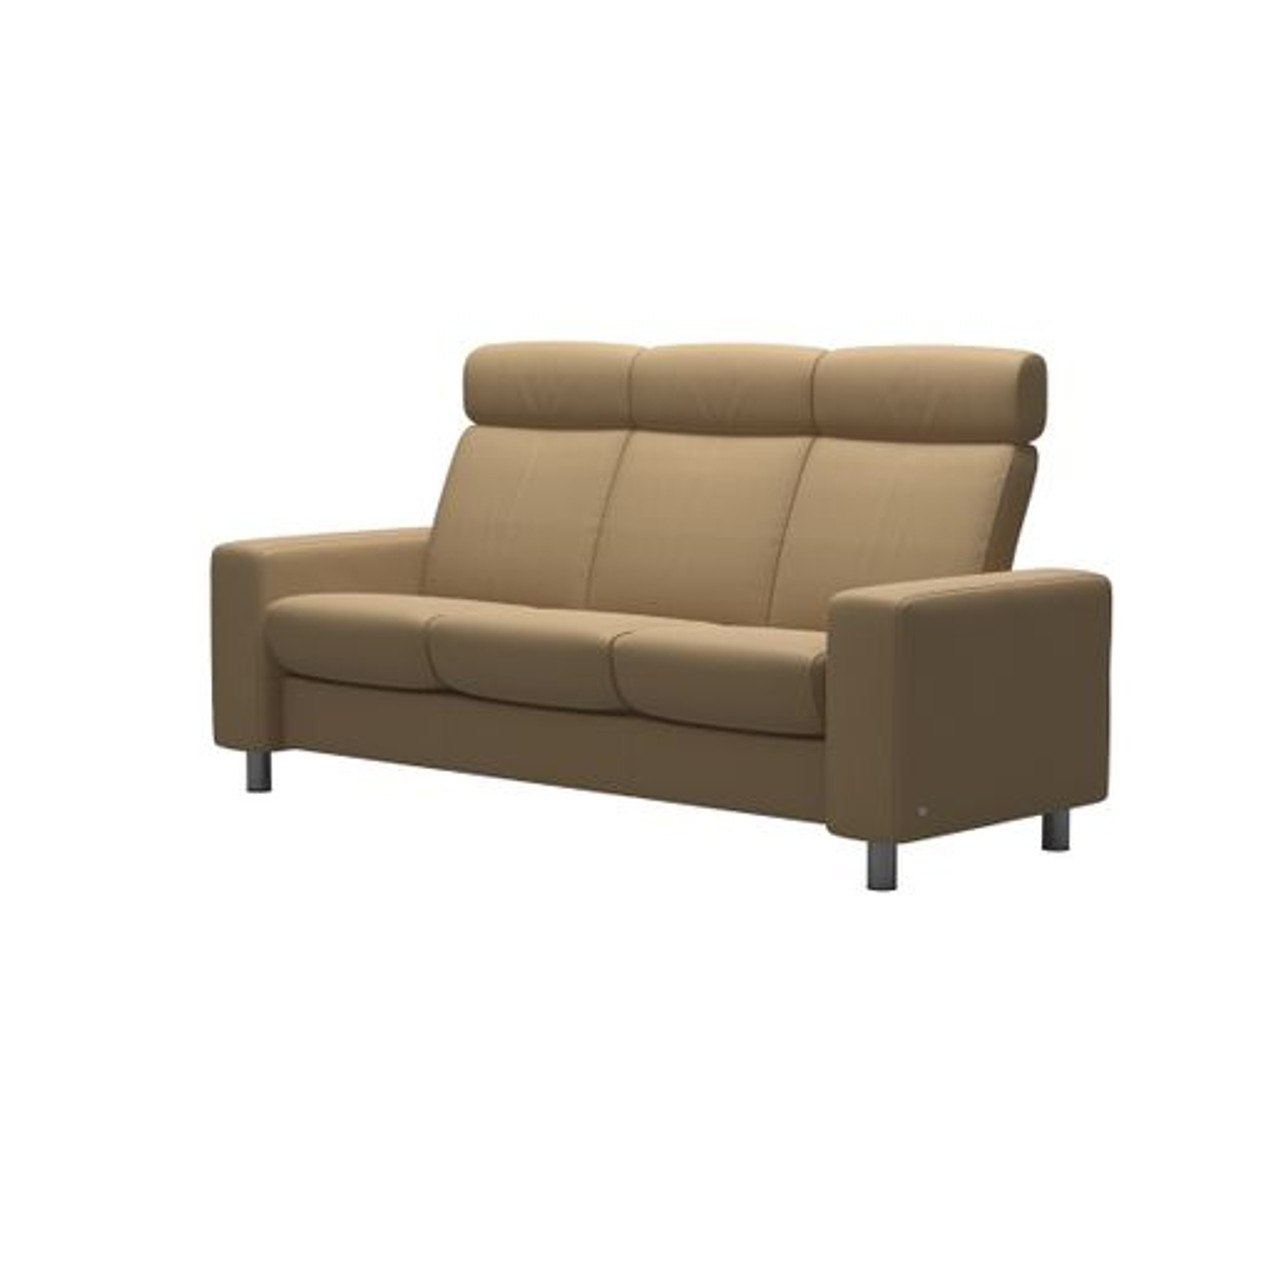 Ekornes Stressless Arion 19 A20 High-Back Sofa - Paloma Special Pricing